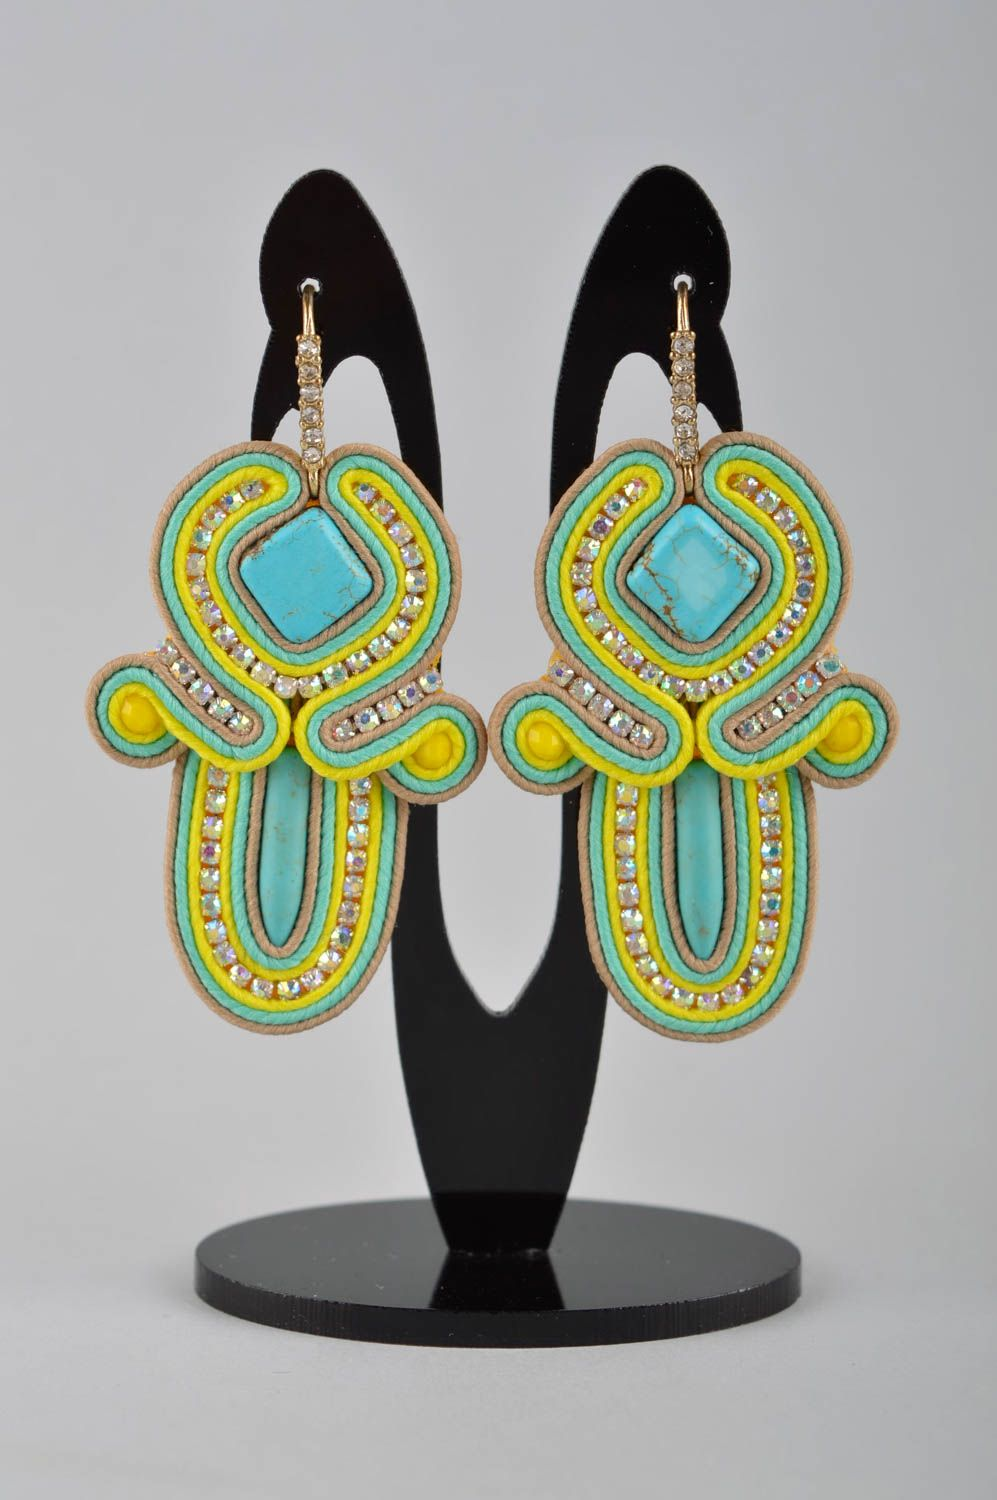 Handmade massive earrings dangling earrings soutache cute earrings gifts for her photo 2